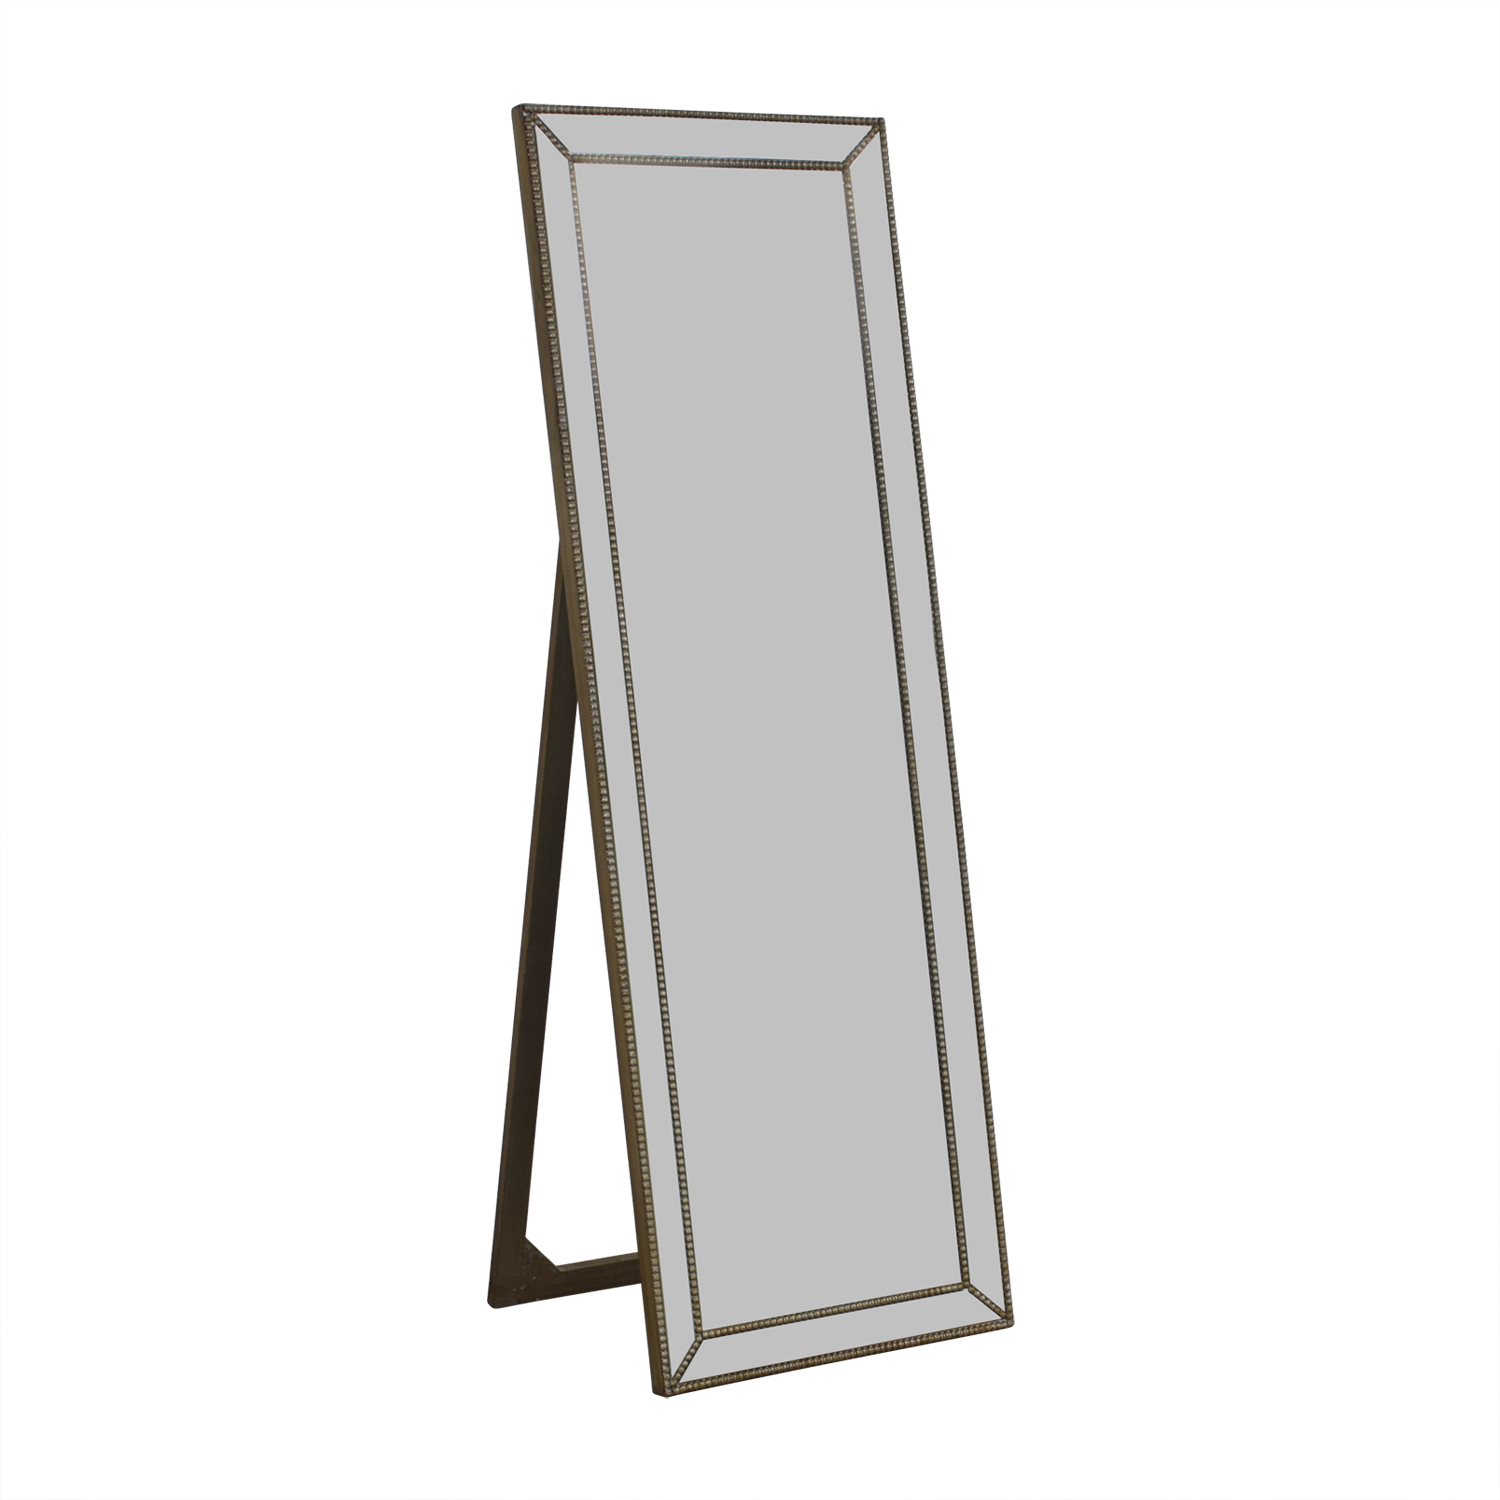 Wayfair Wayfair Leaning Mirror second hand